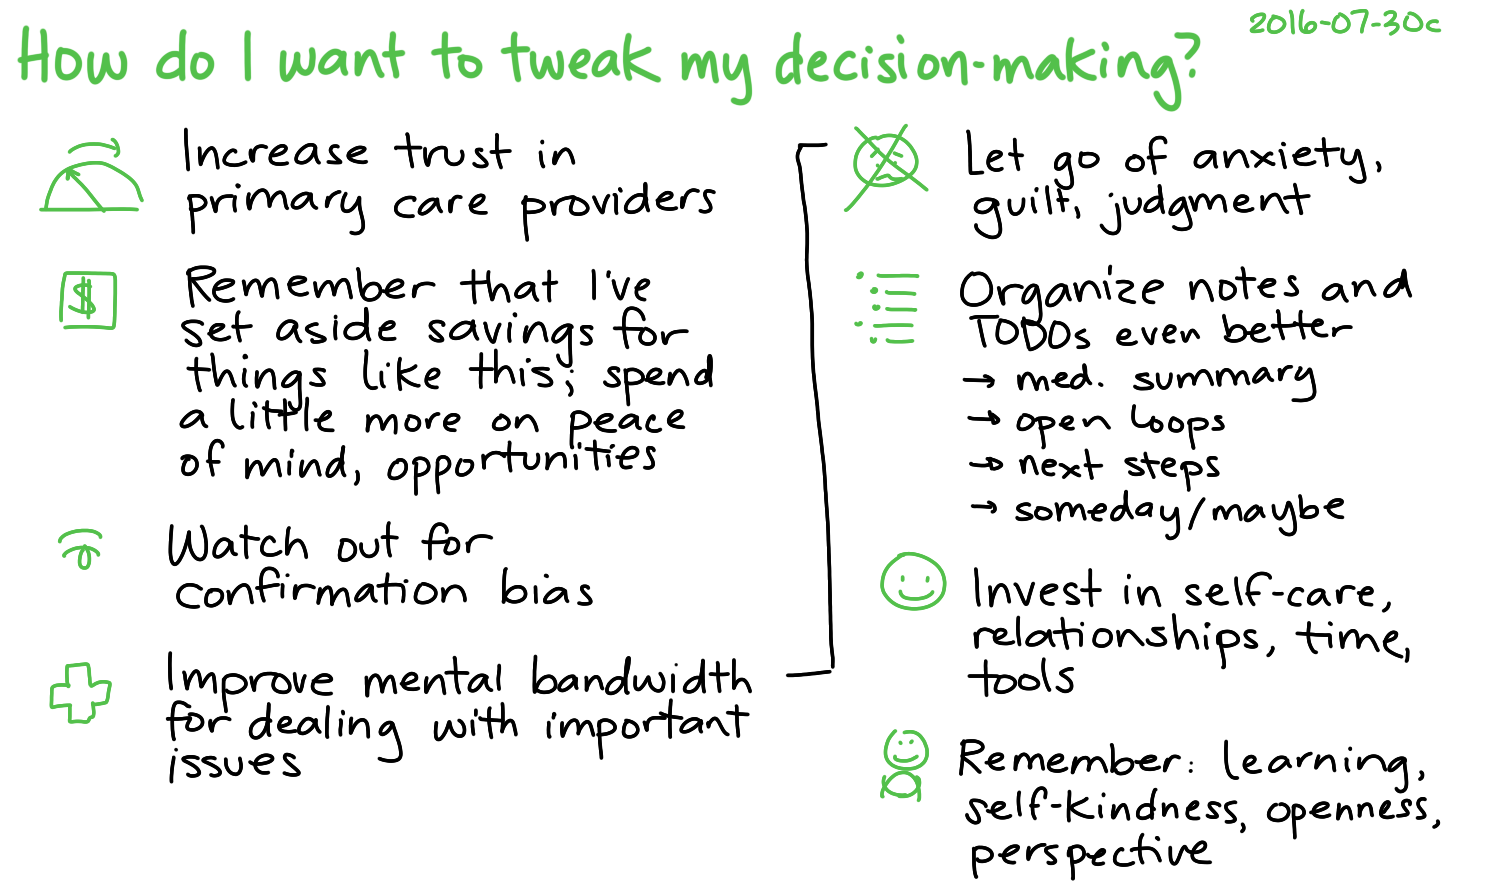 2016-07-30c How do I want to tweak my decision-making -- index card #perspective #parenting #kaizen.png